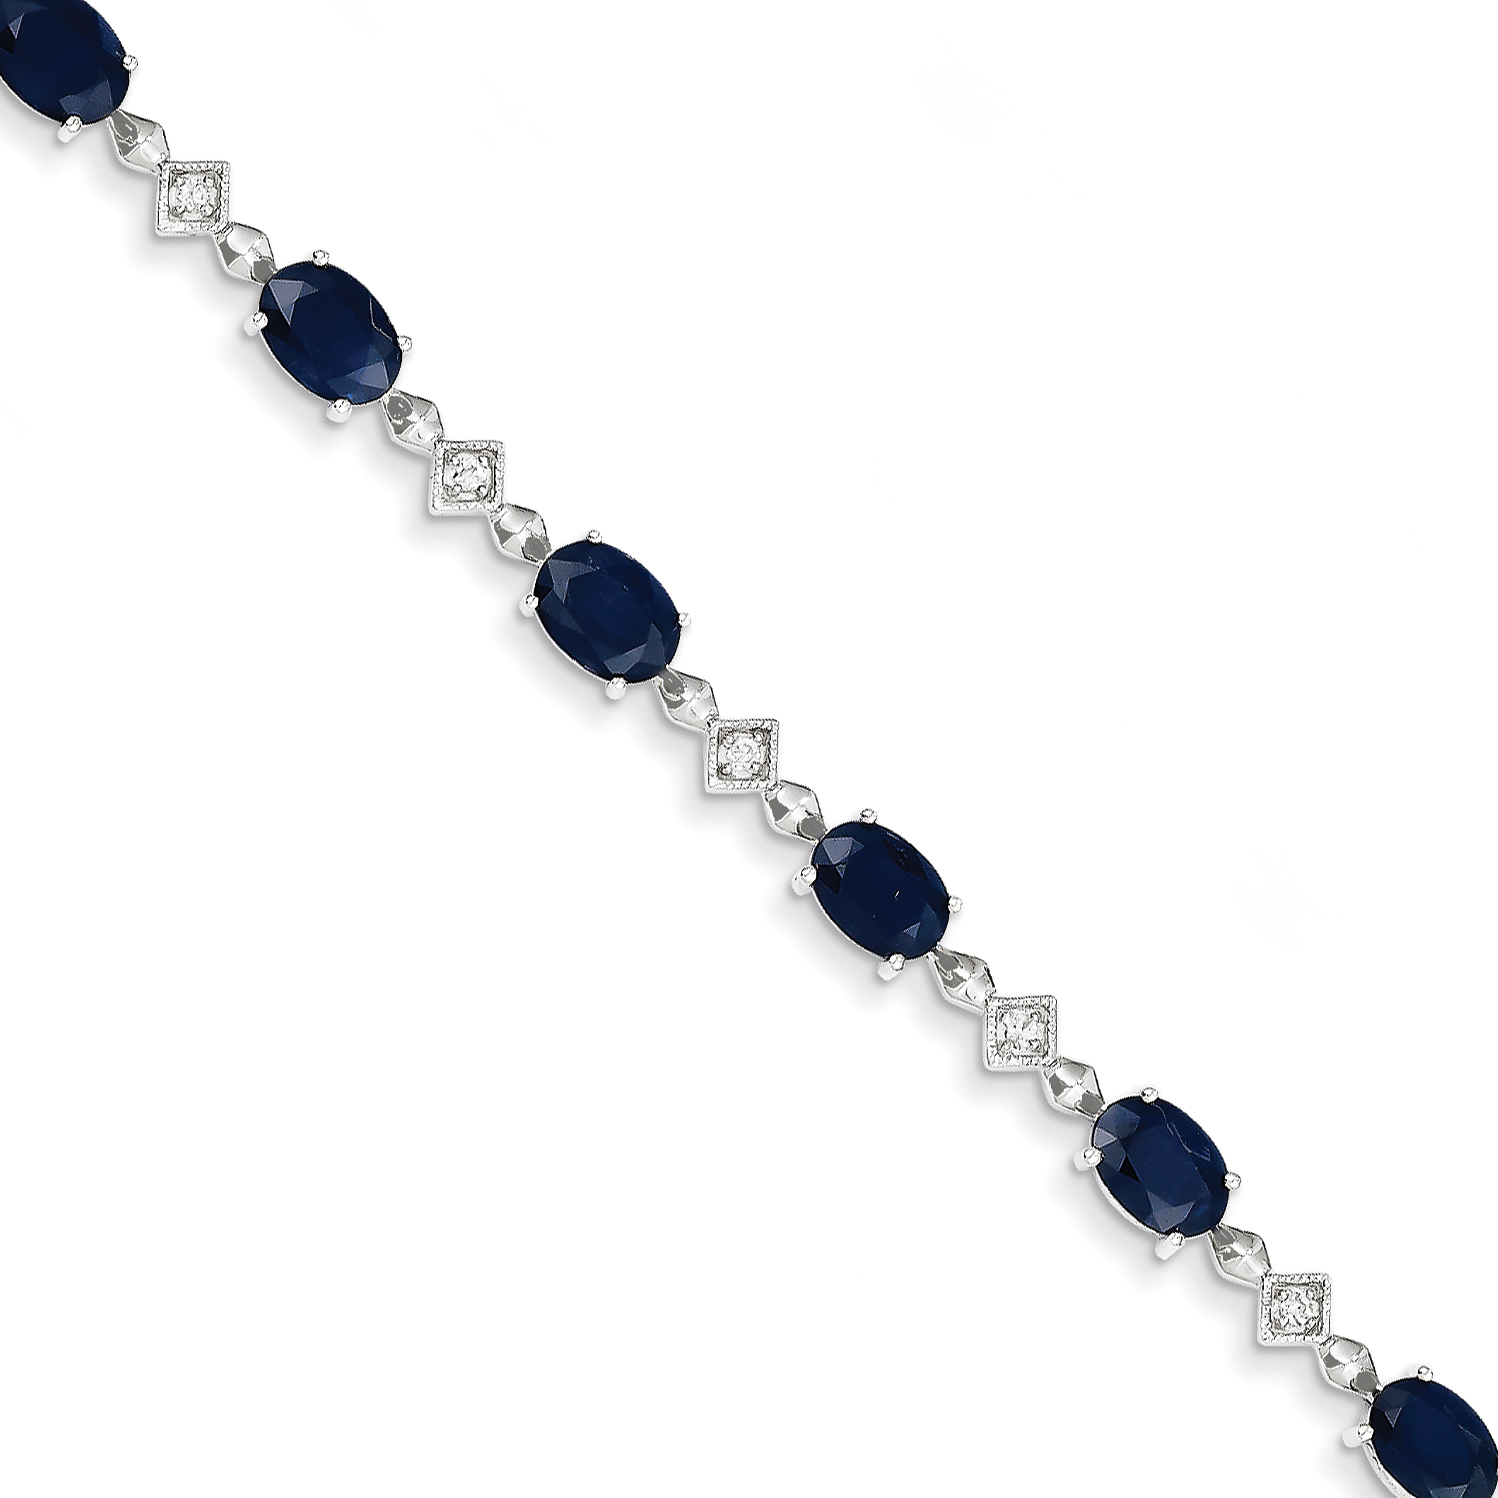 14K White Gold Diamond and Sapphire Bracelet by Saris and Things QG